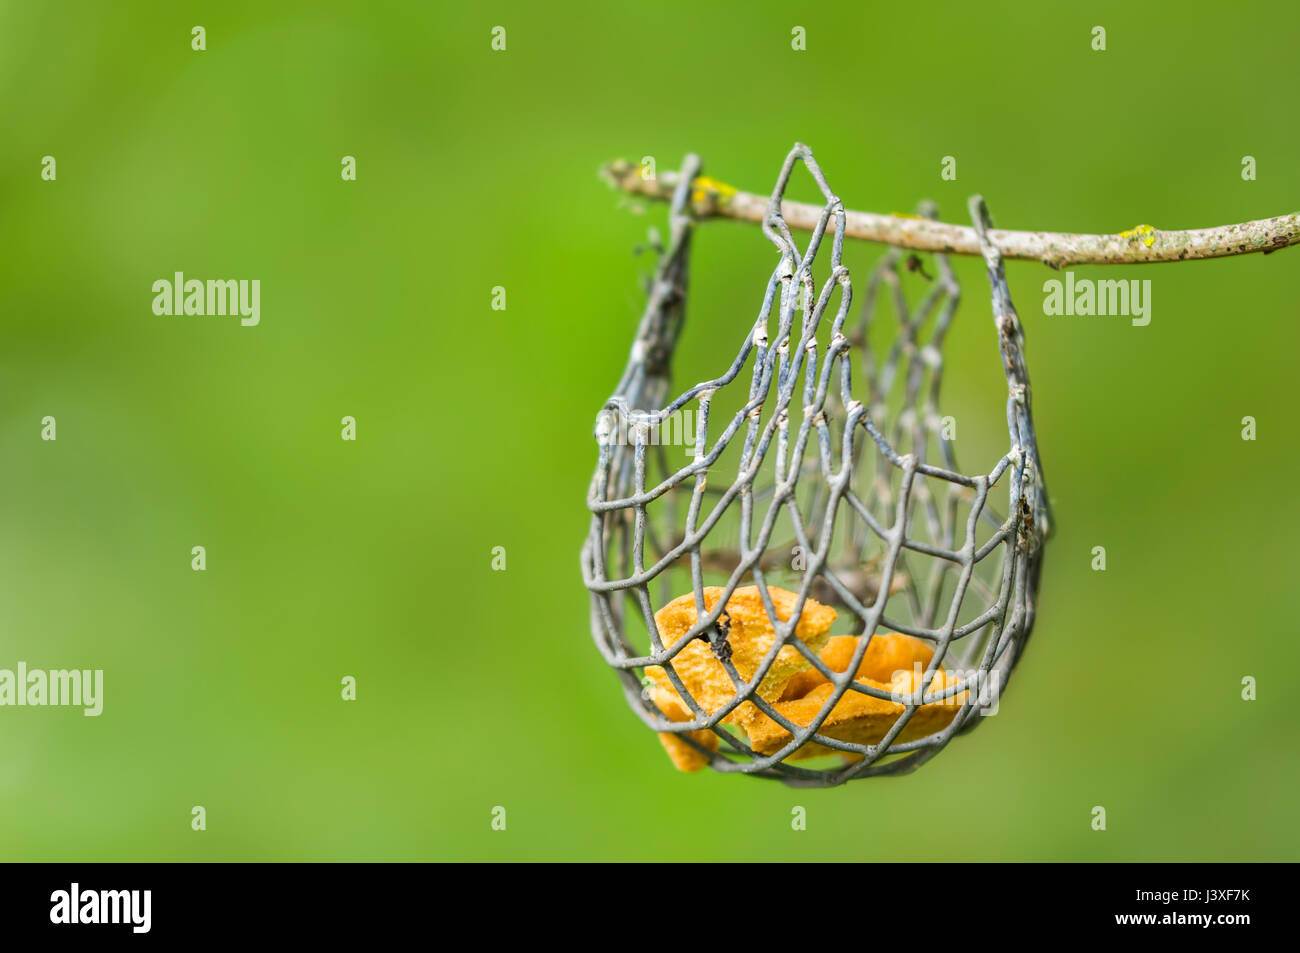 Small bird feeder hanging from a twig on a tree. - Stock Image